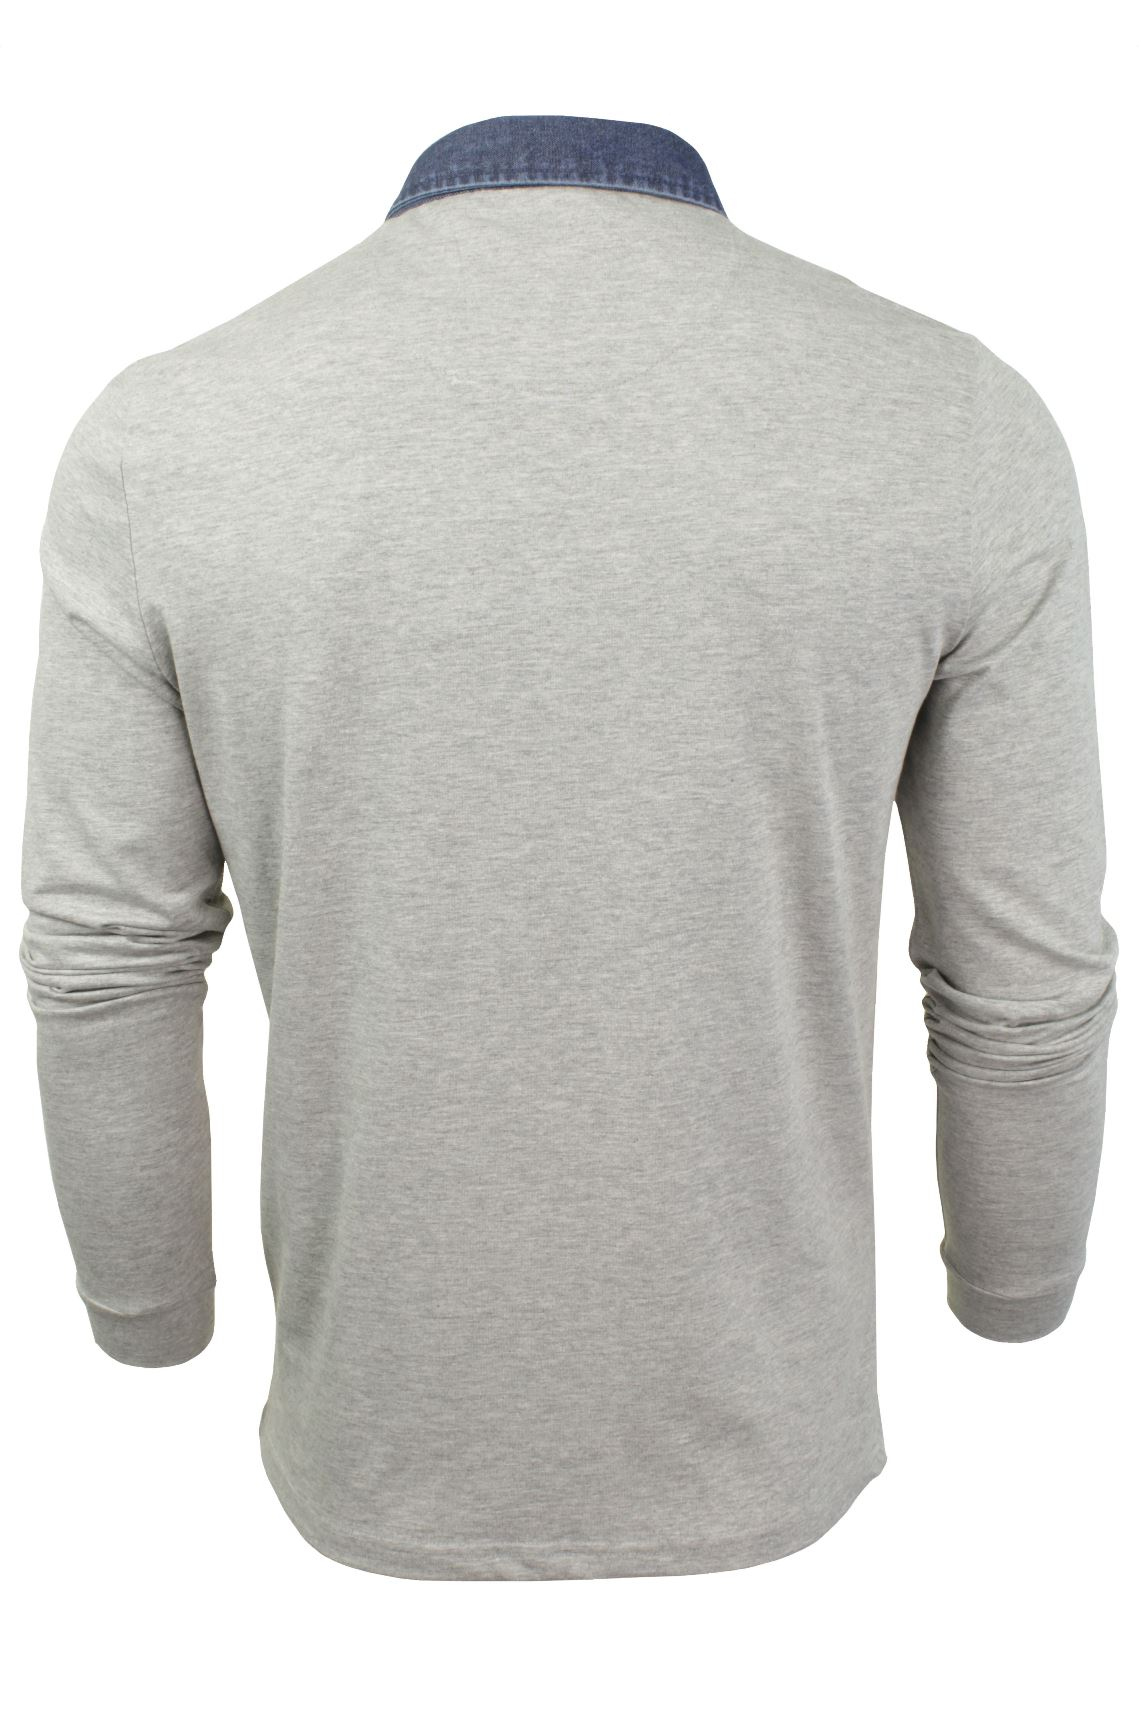 Mens-Long-Sleeved-Polo-T-Shirt-by-Brave-Soul-with-Denim-Collar thumbnail 8